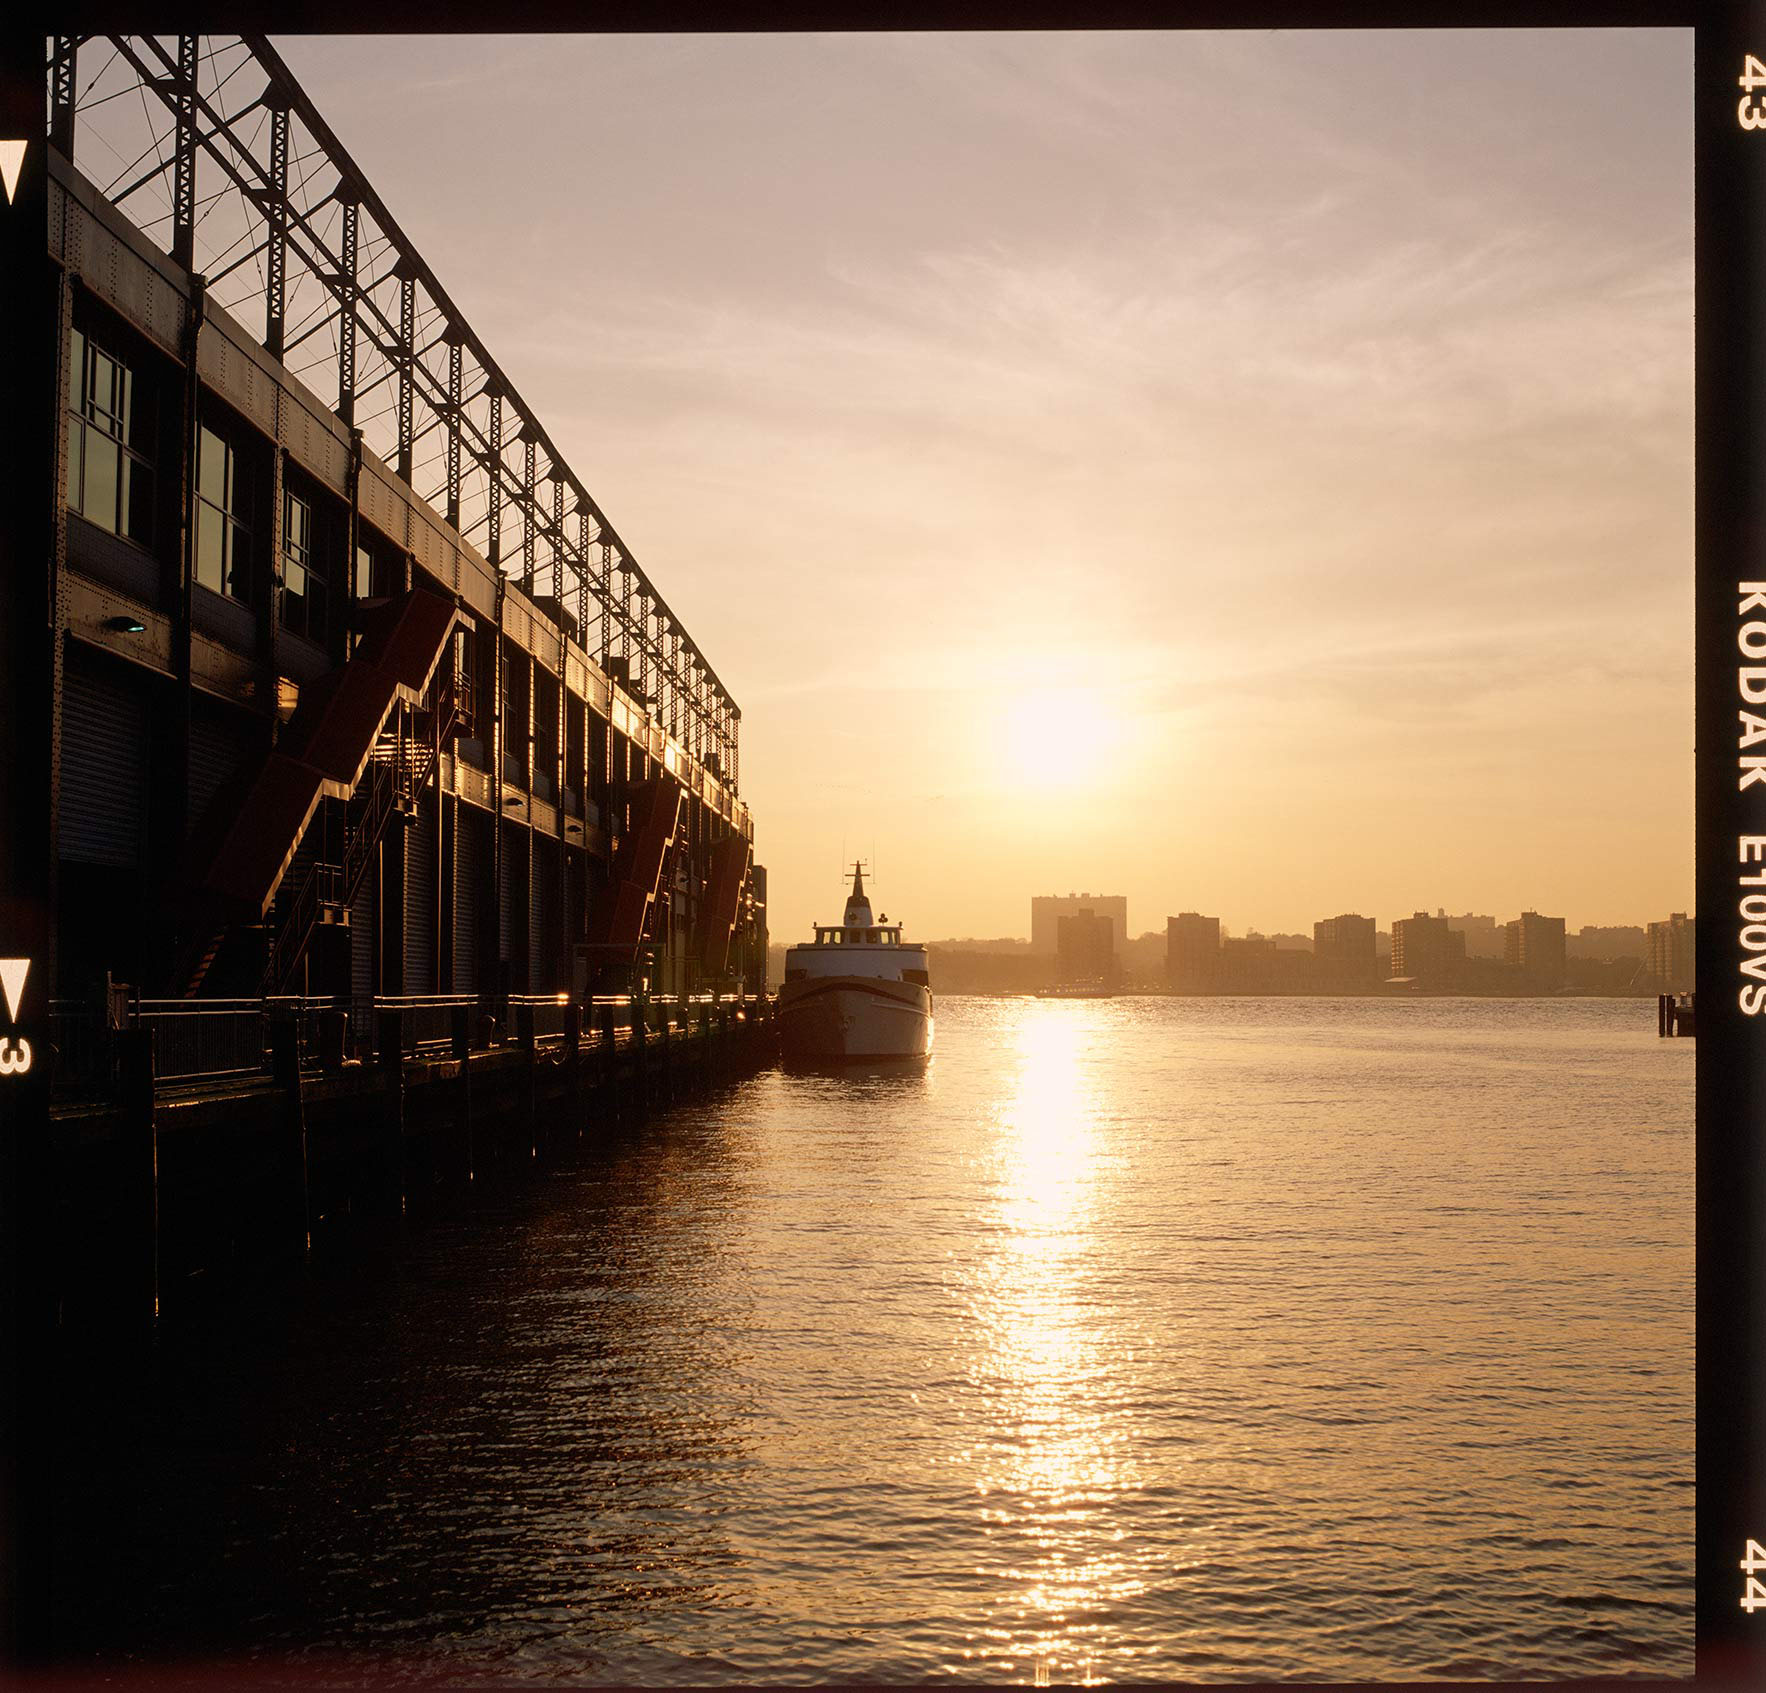 Party-Boat-at-sunset-along-Hudson-River-Pier